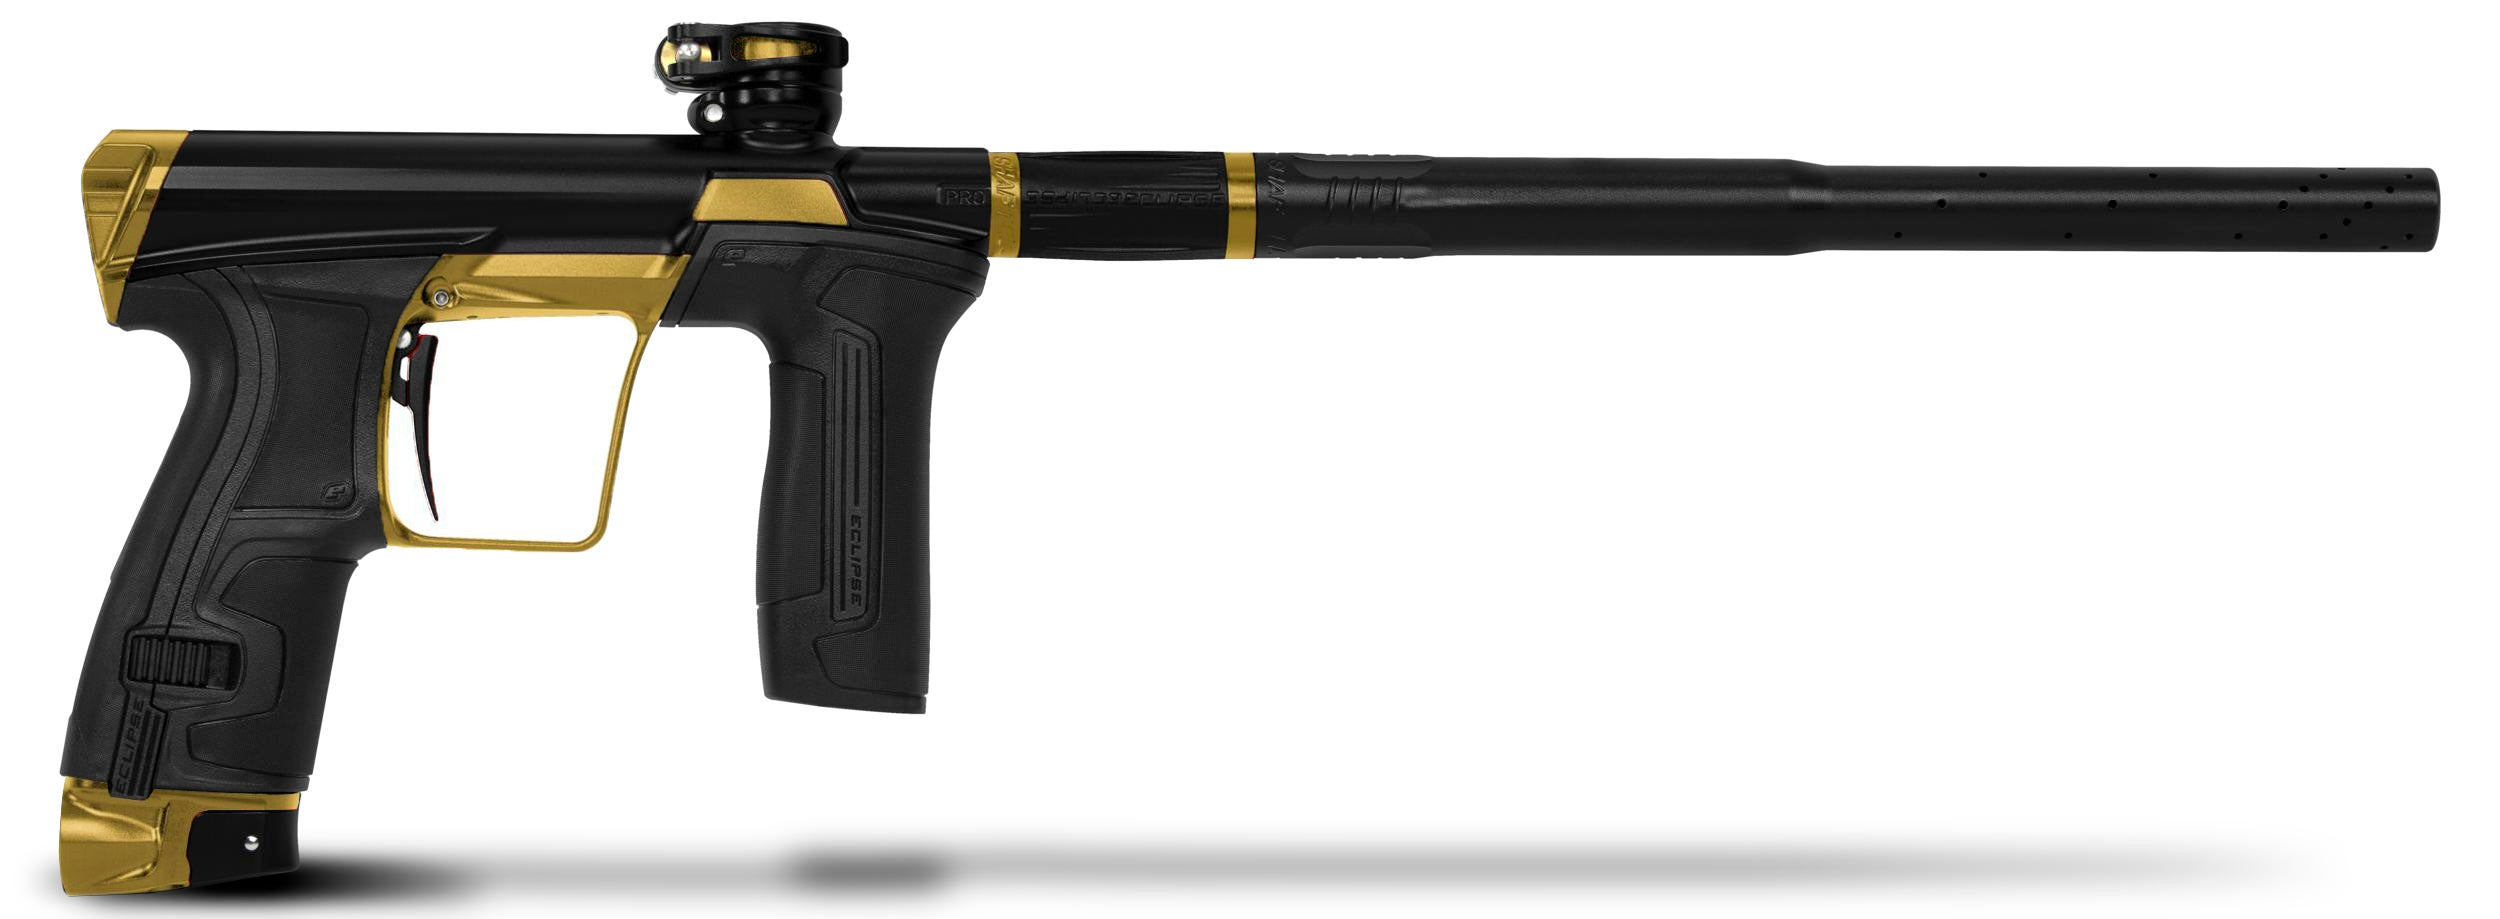 Planet Eclipse CS2 Pro Paintball Marker - Black / Gold